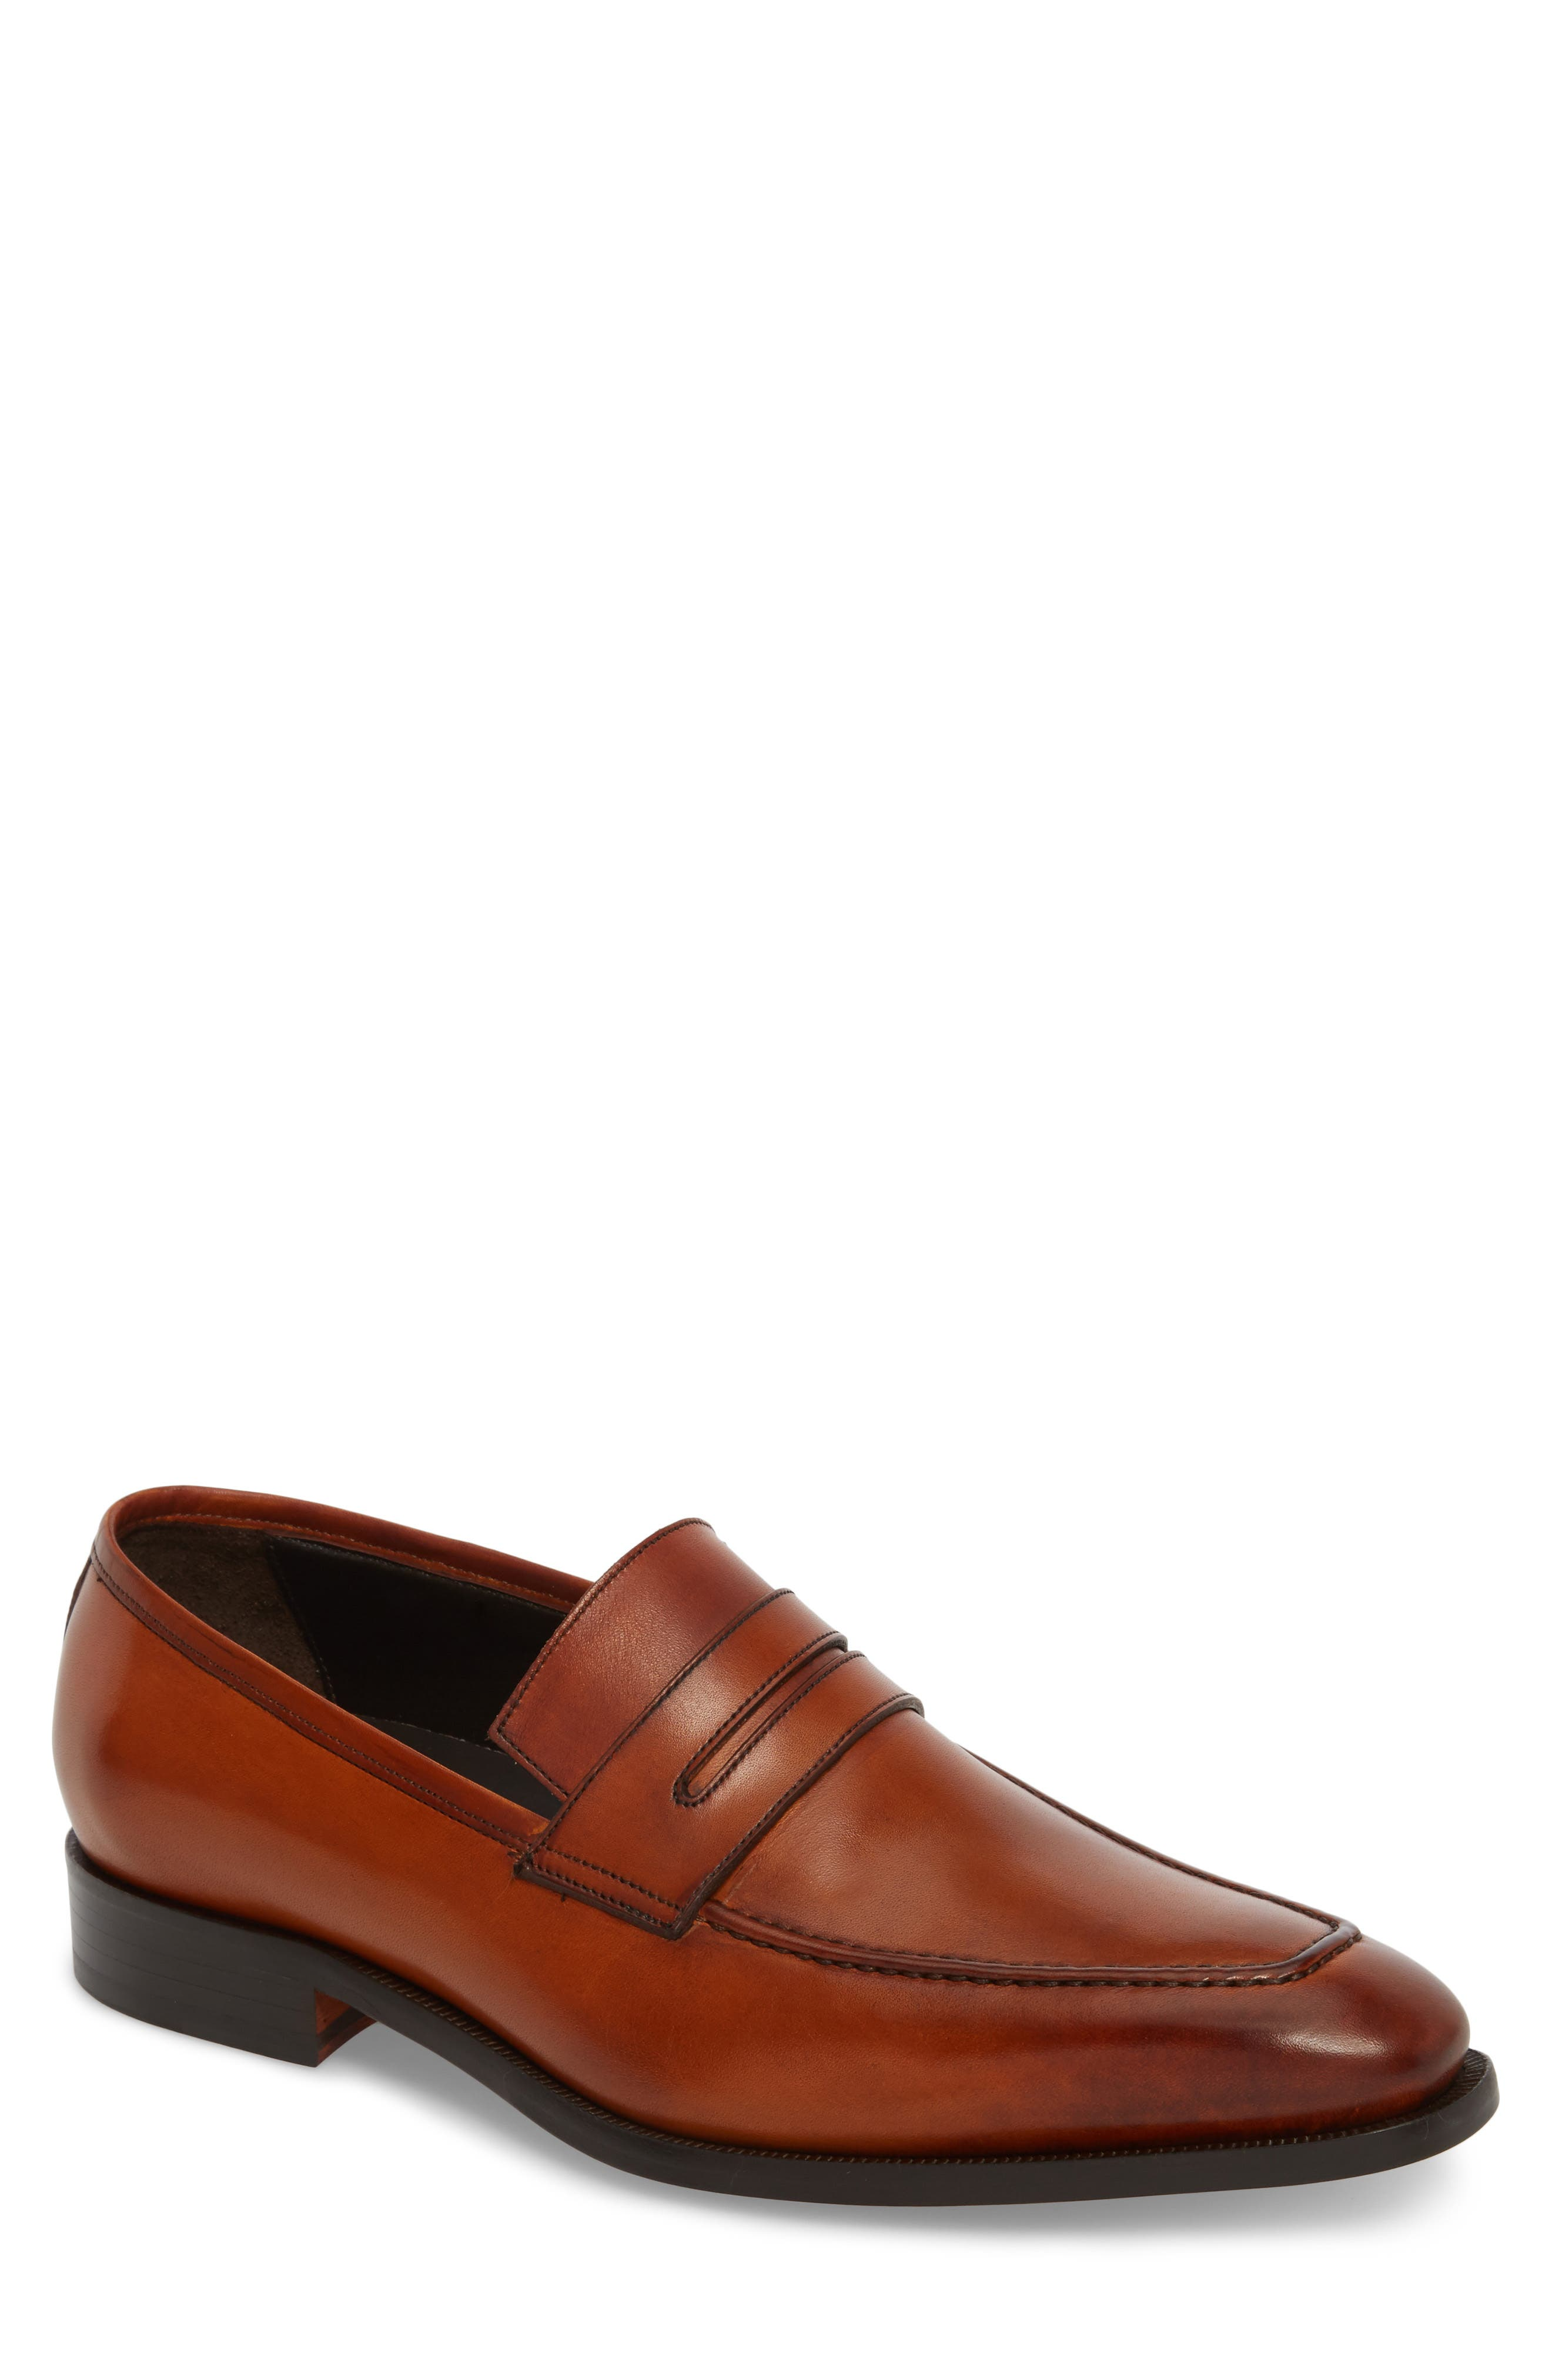 Eastwood Apron Toe Penny Loafer,                         Main,                         color, 231